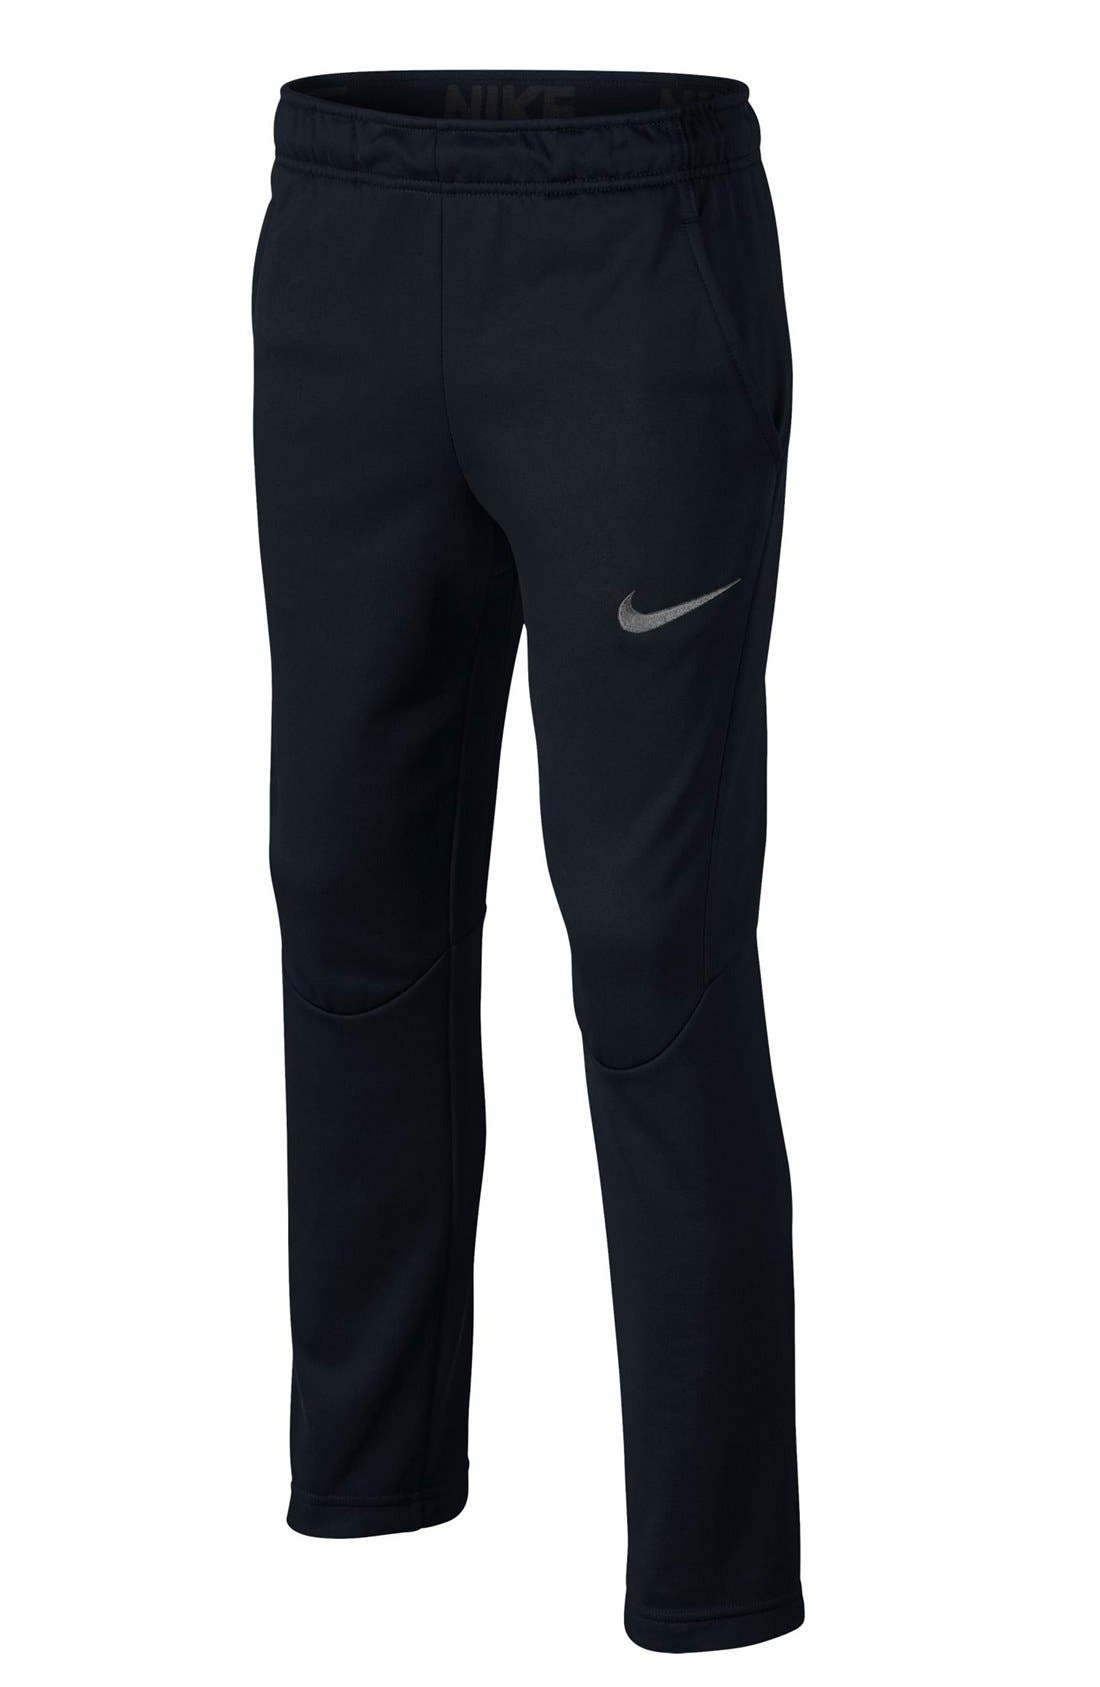 Nike Therma-FIT Training Pants (Little Boys & Big Boys) (Regular Retail Price: $40.00)